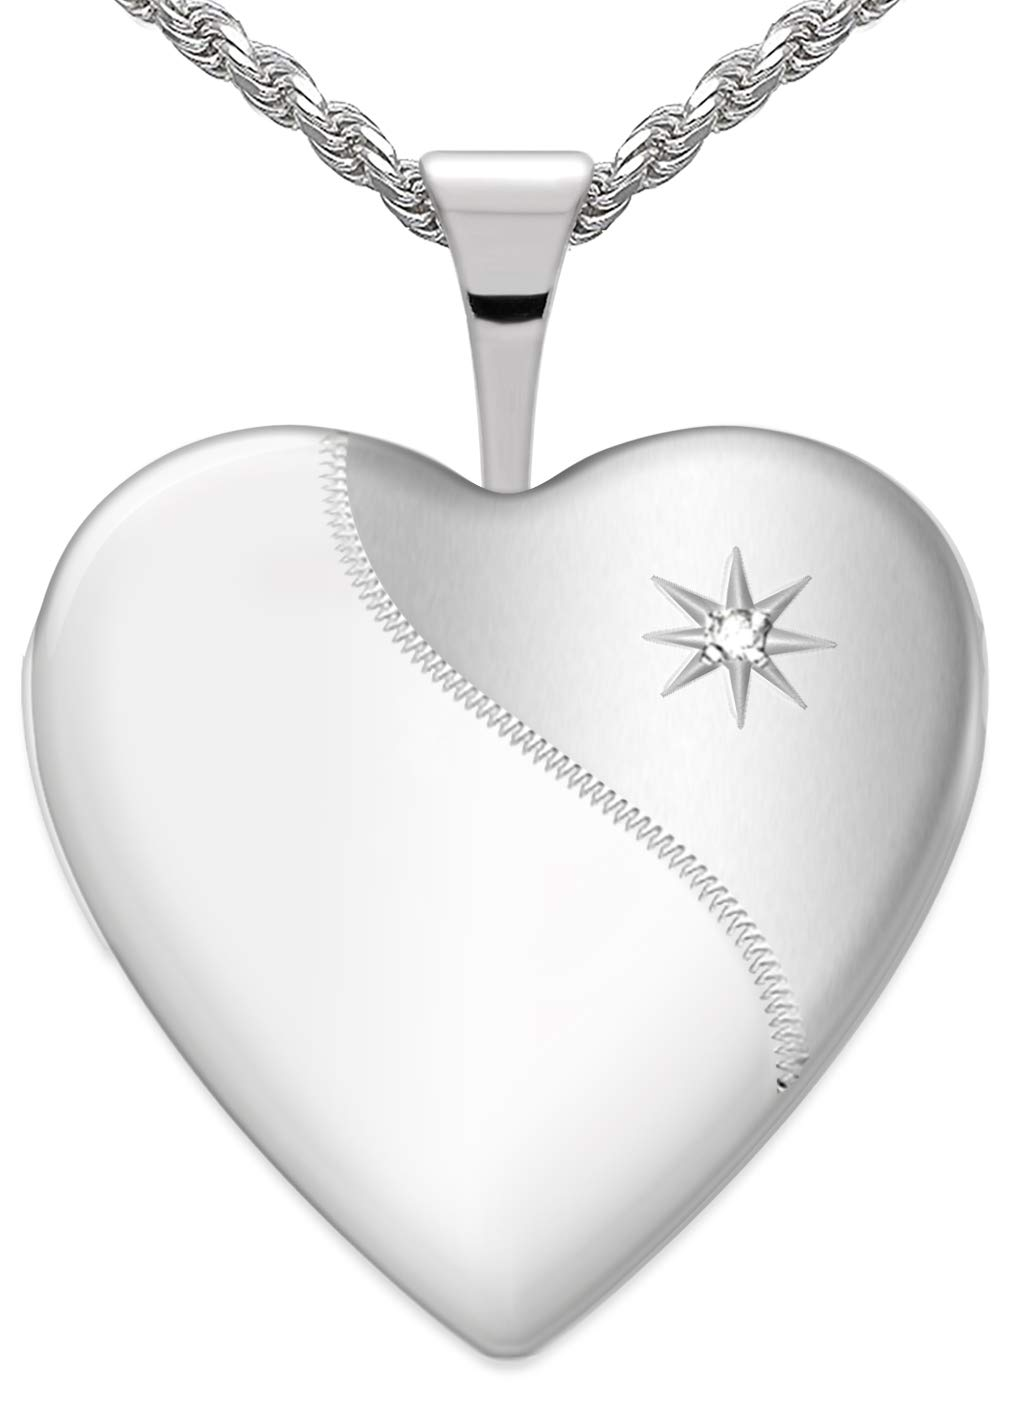 US Jewels And Gems Women's 3/4in 0.925 Sterling Silver 2 Photo Heart Locket with Diamond Accent 2mm Box Necklace, 18in by US Jewels And Gems